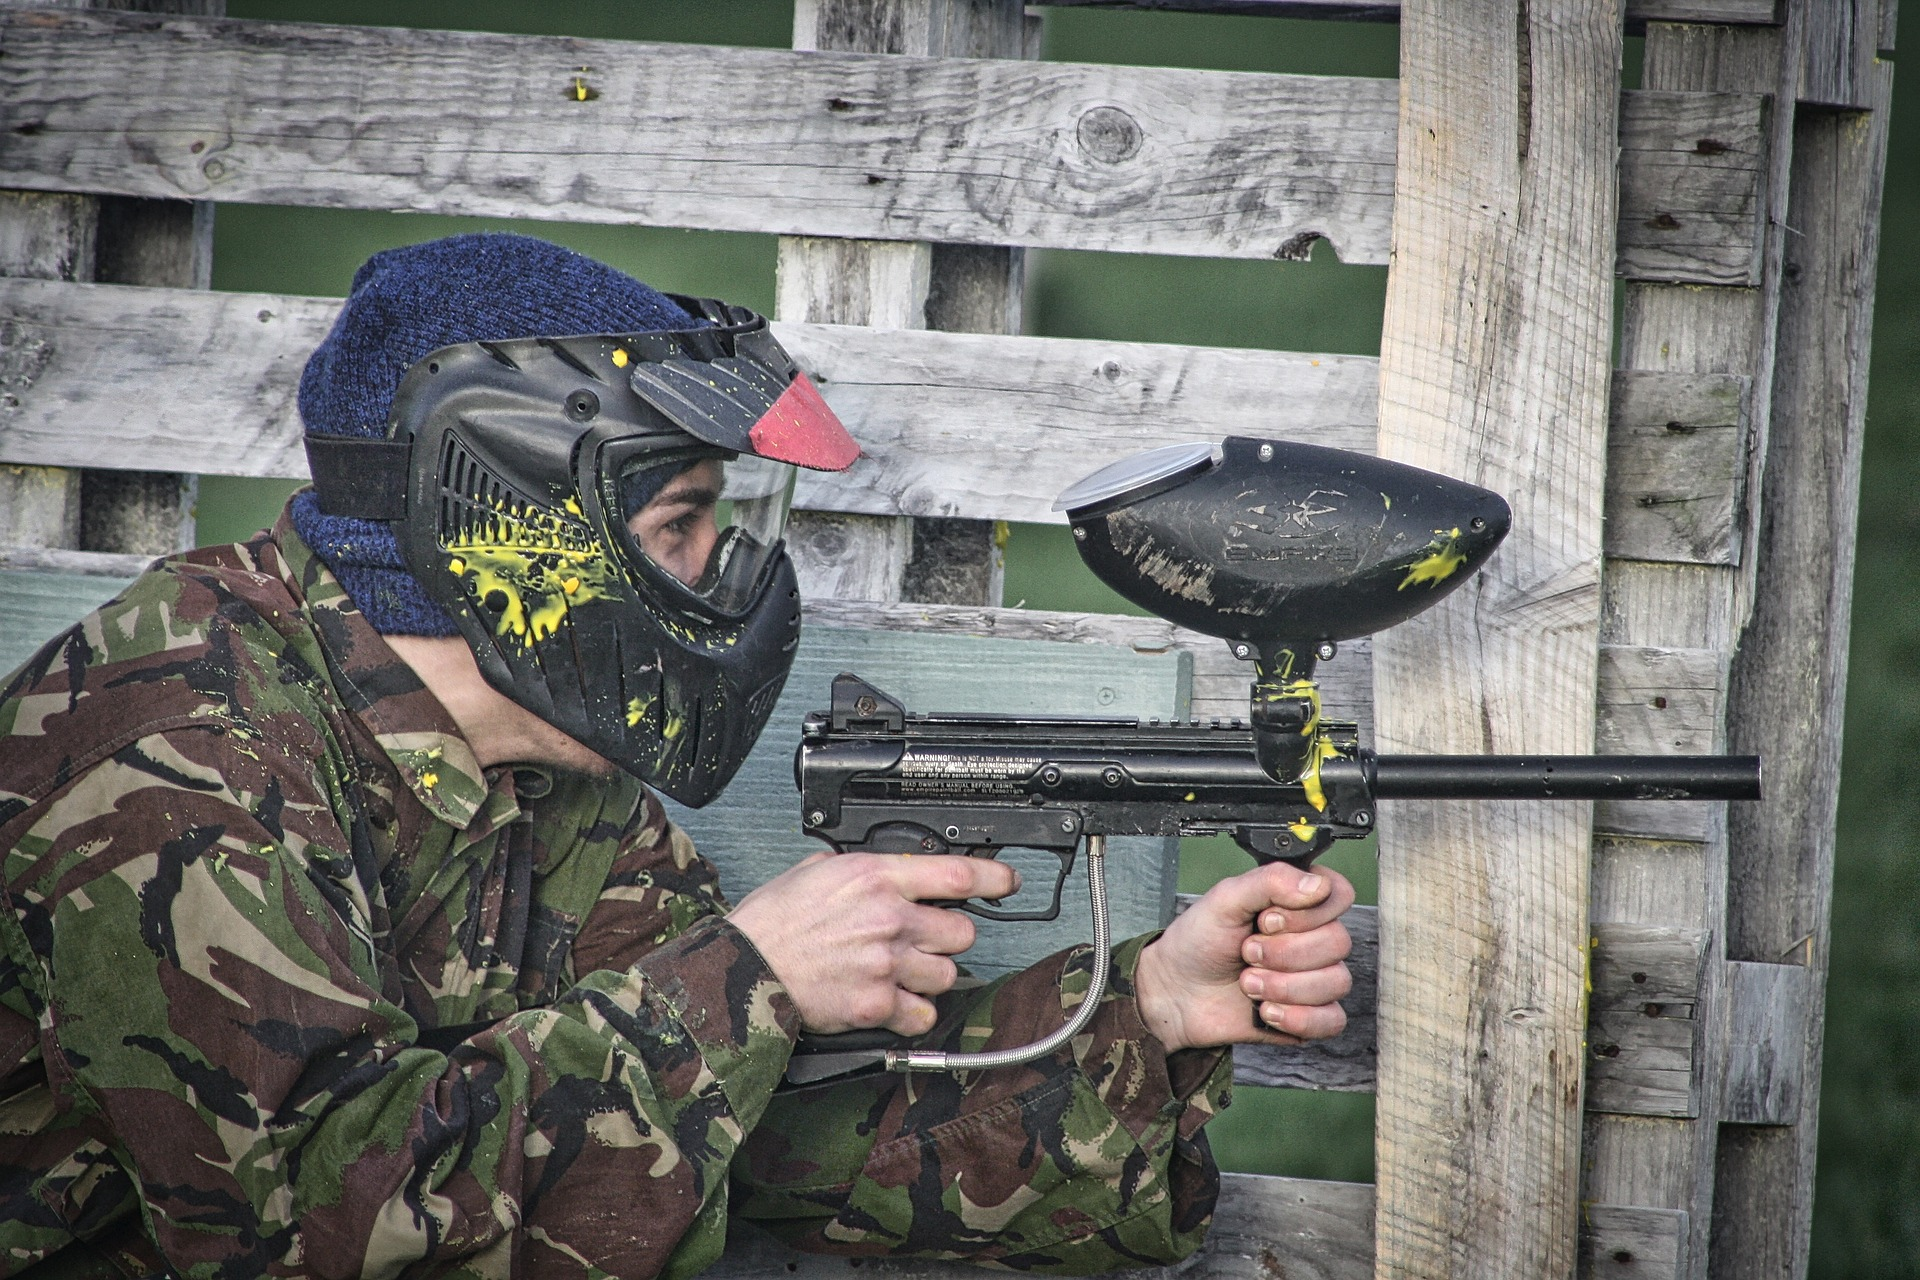 , Paintball in the backyard, Best Garden, Home And DIY Tips